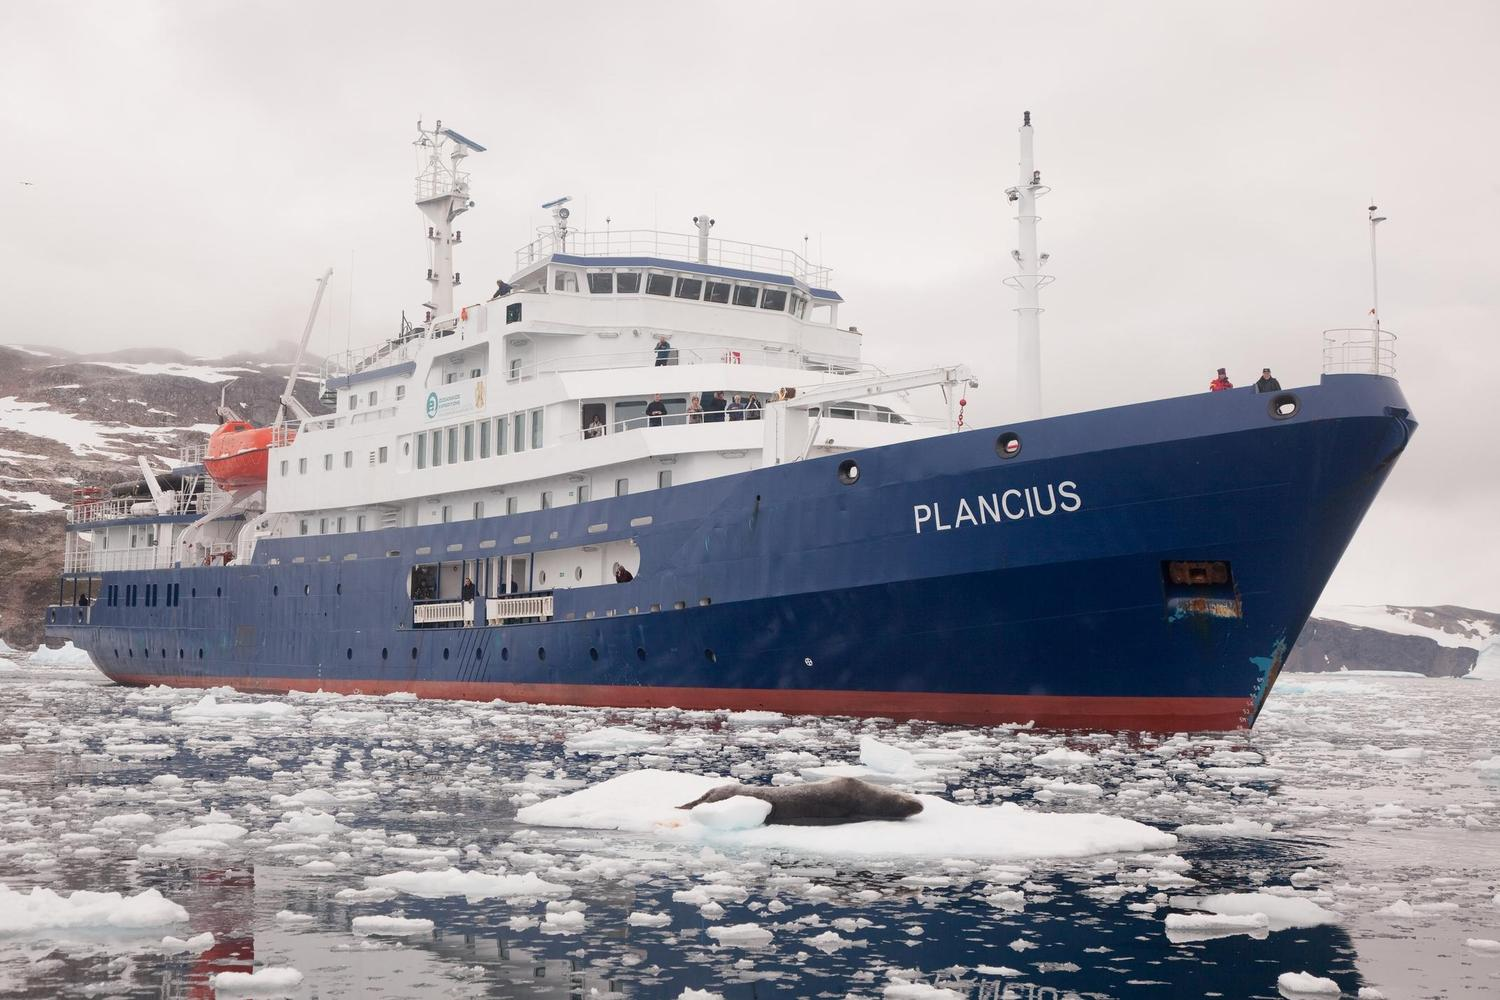 Antarctic expedition ship Plancius